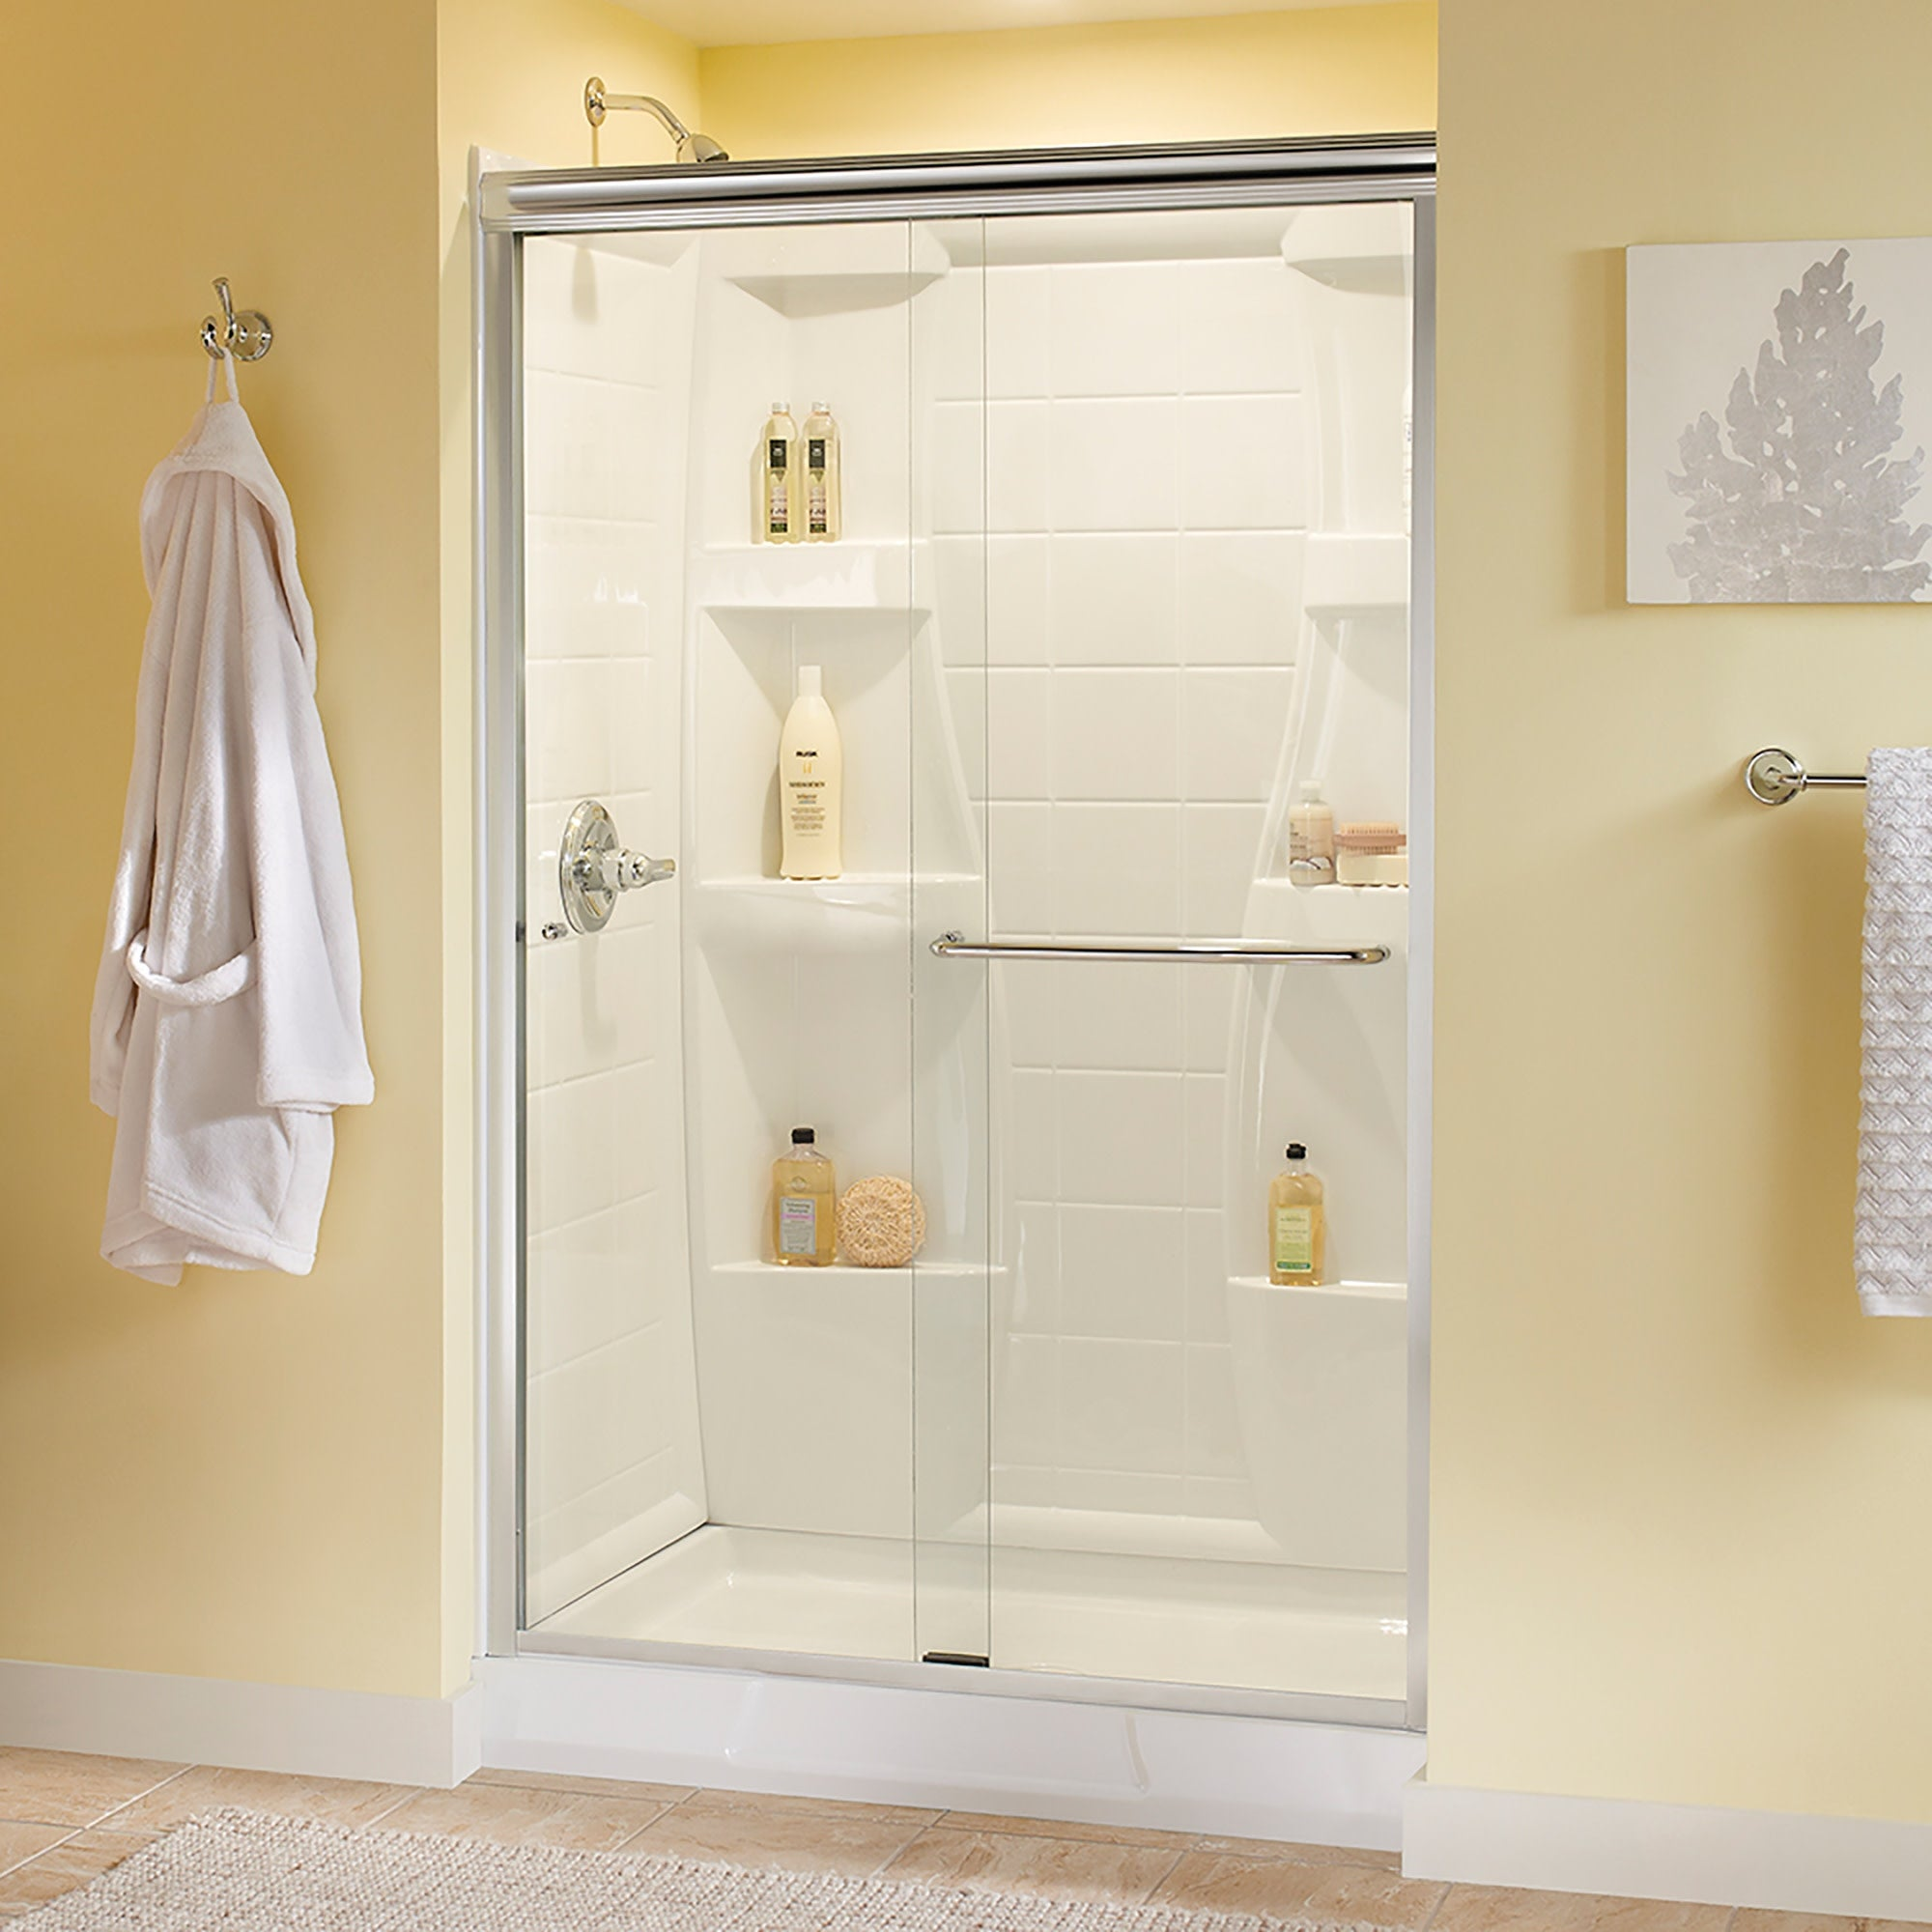 Delta Sd3956938 Classic 70 High X 47 3 8 Wide Sliding Semi Frameless Shower Door With Clear Glass Chrome